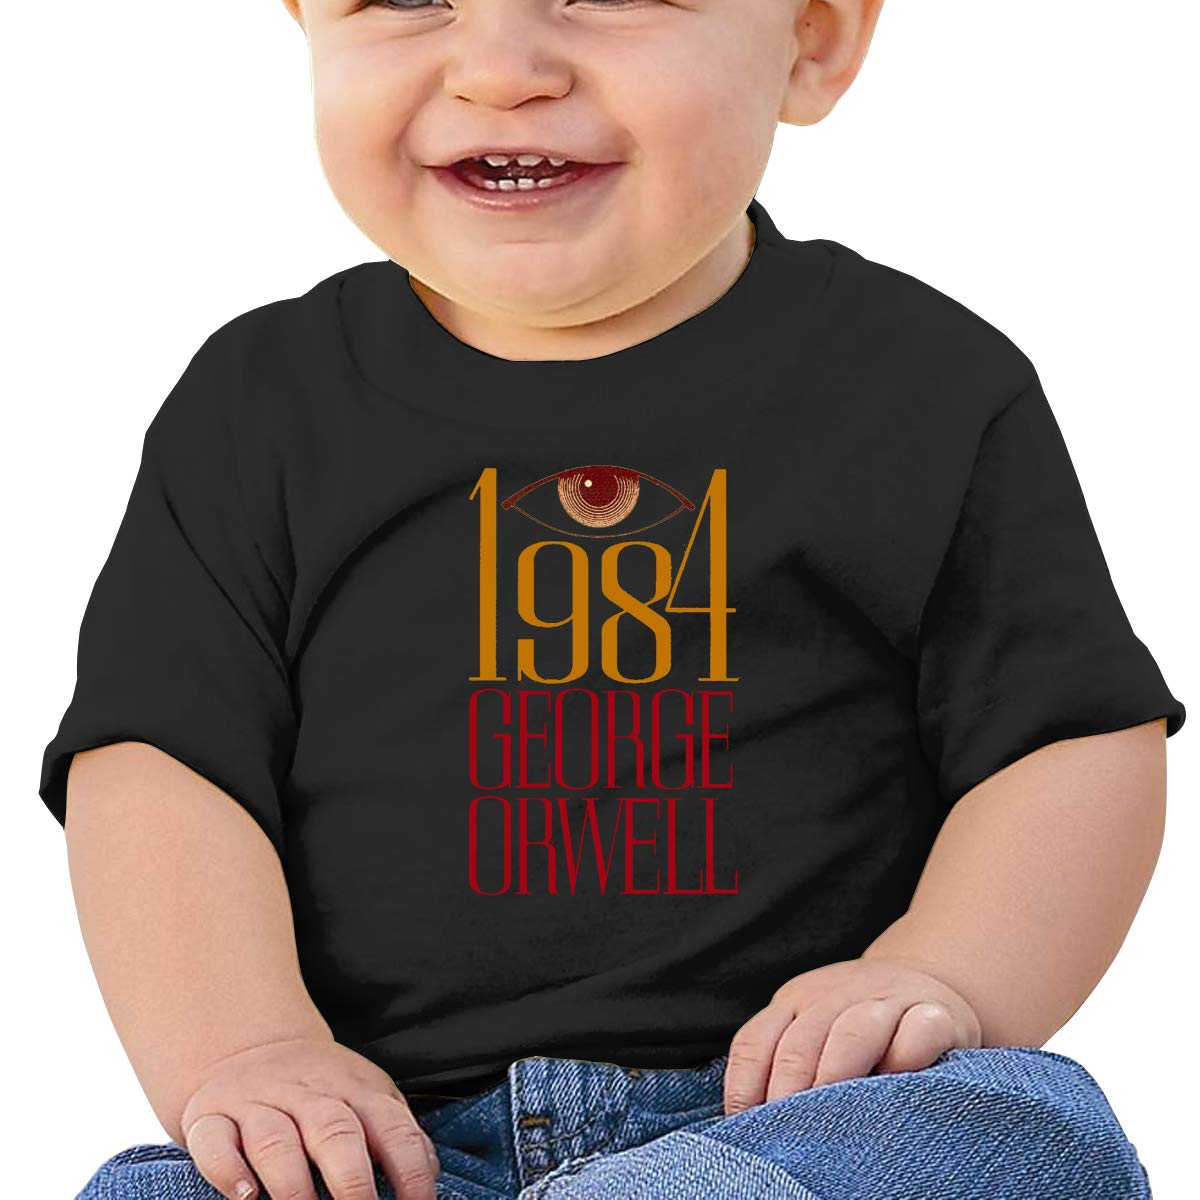 MONIKAL Unisex Infant Short Sleeve T-Shirt 1981 George Orwell Toddler Kids Organic Cotton Graphic Tee Tops